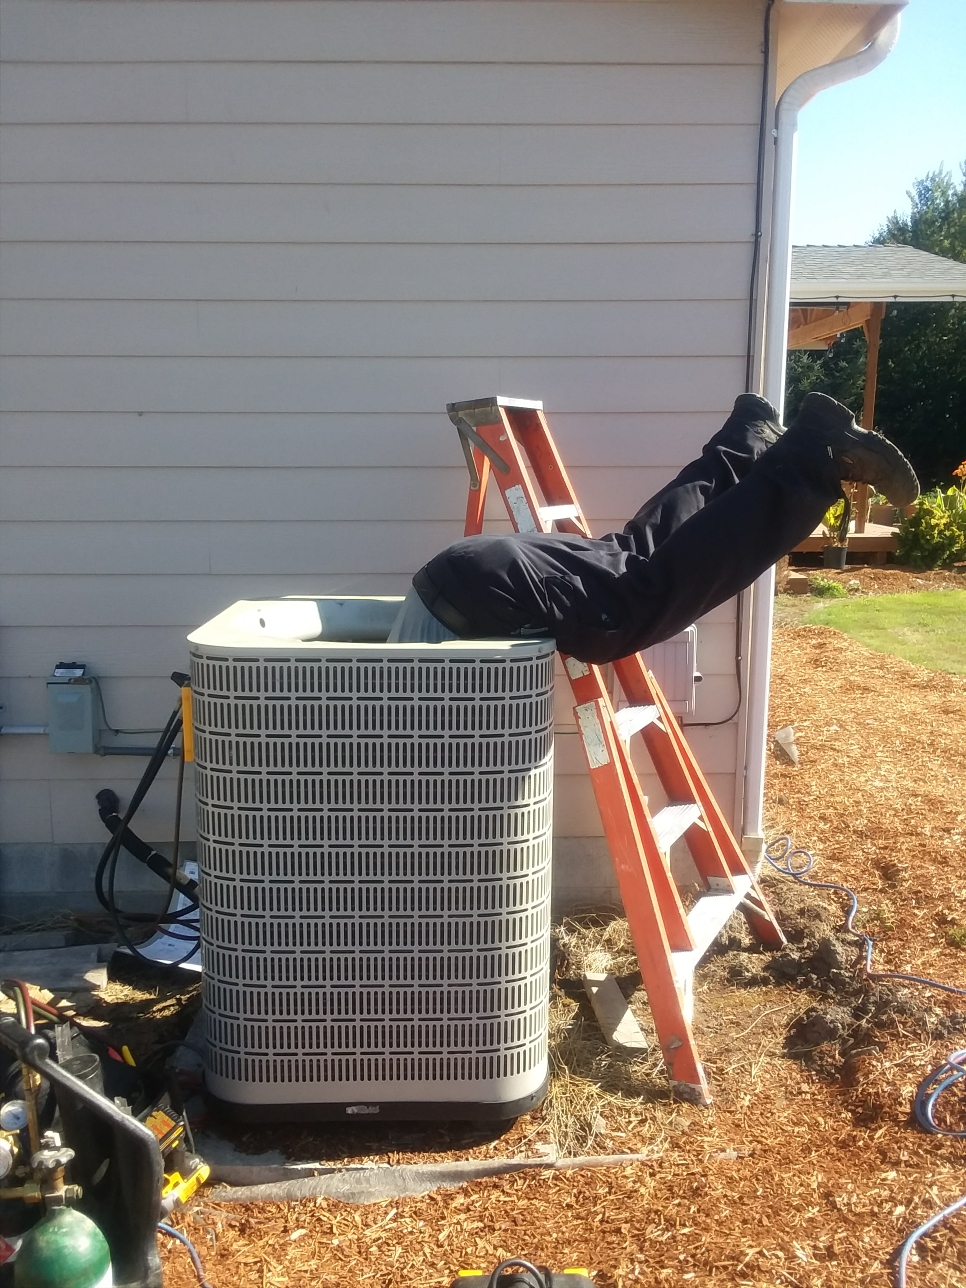 Bothell, WA - Diagnosed a failed compressor on a Lennox heat pump in Bothell.